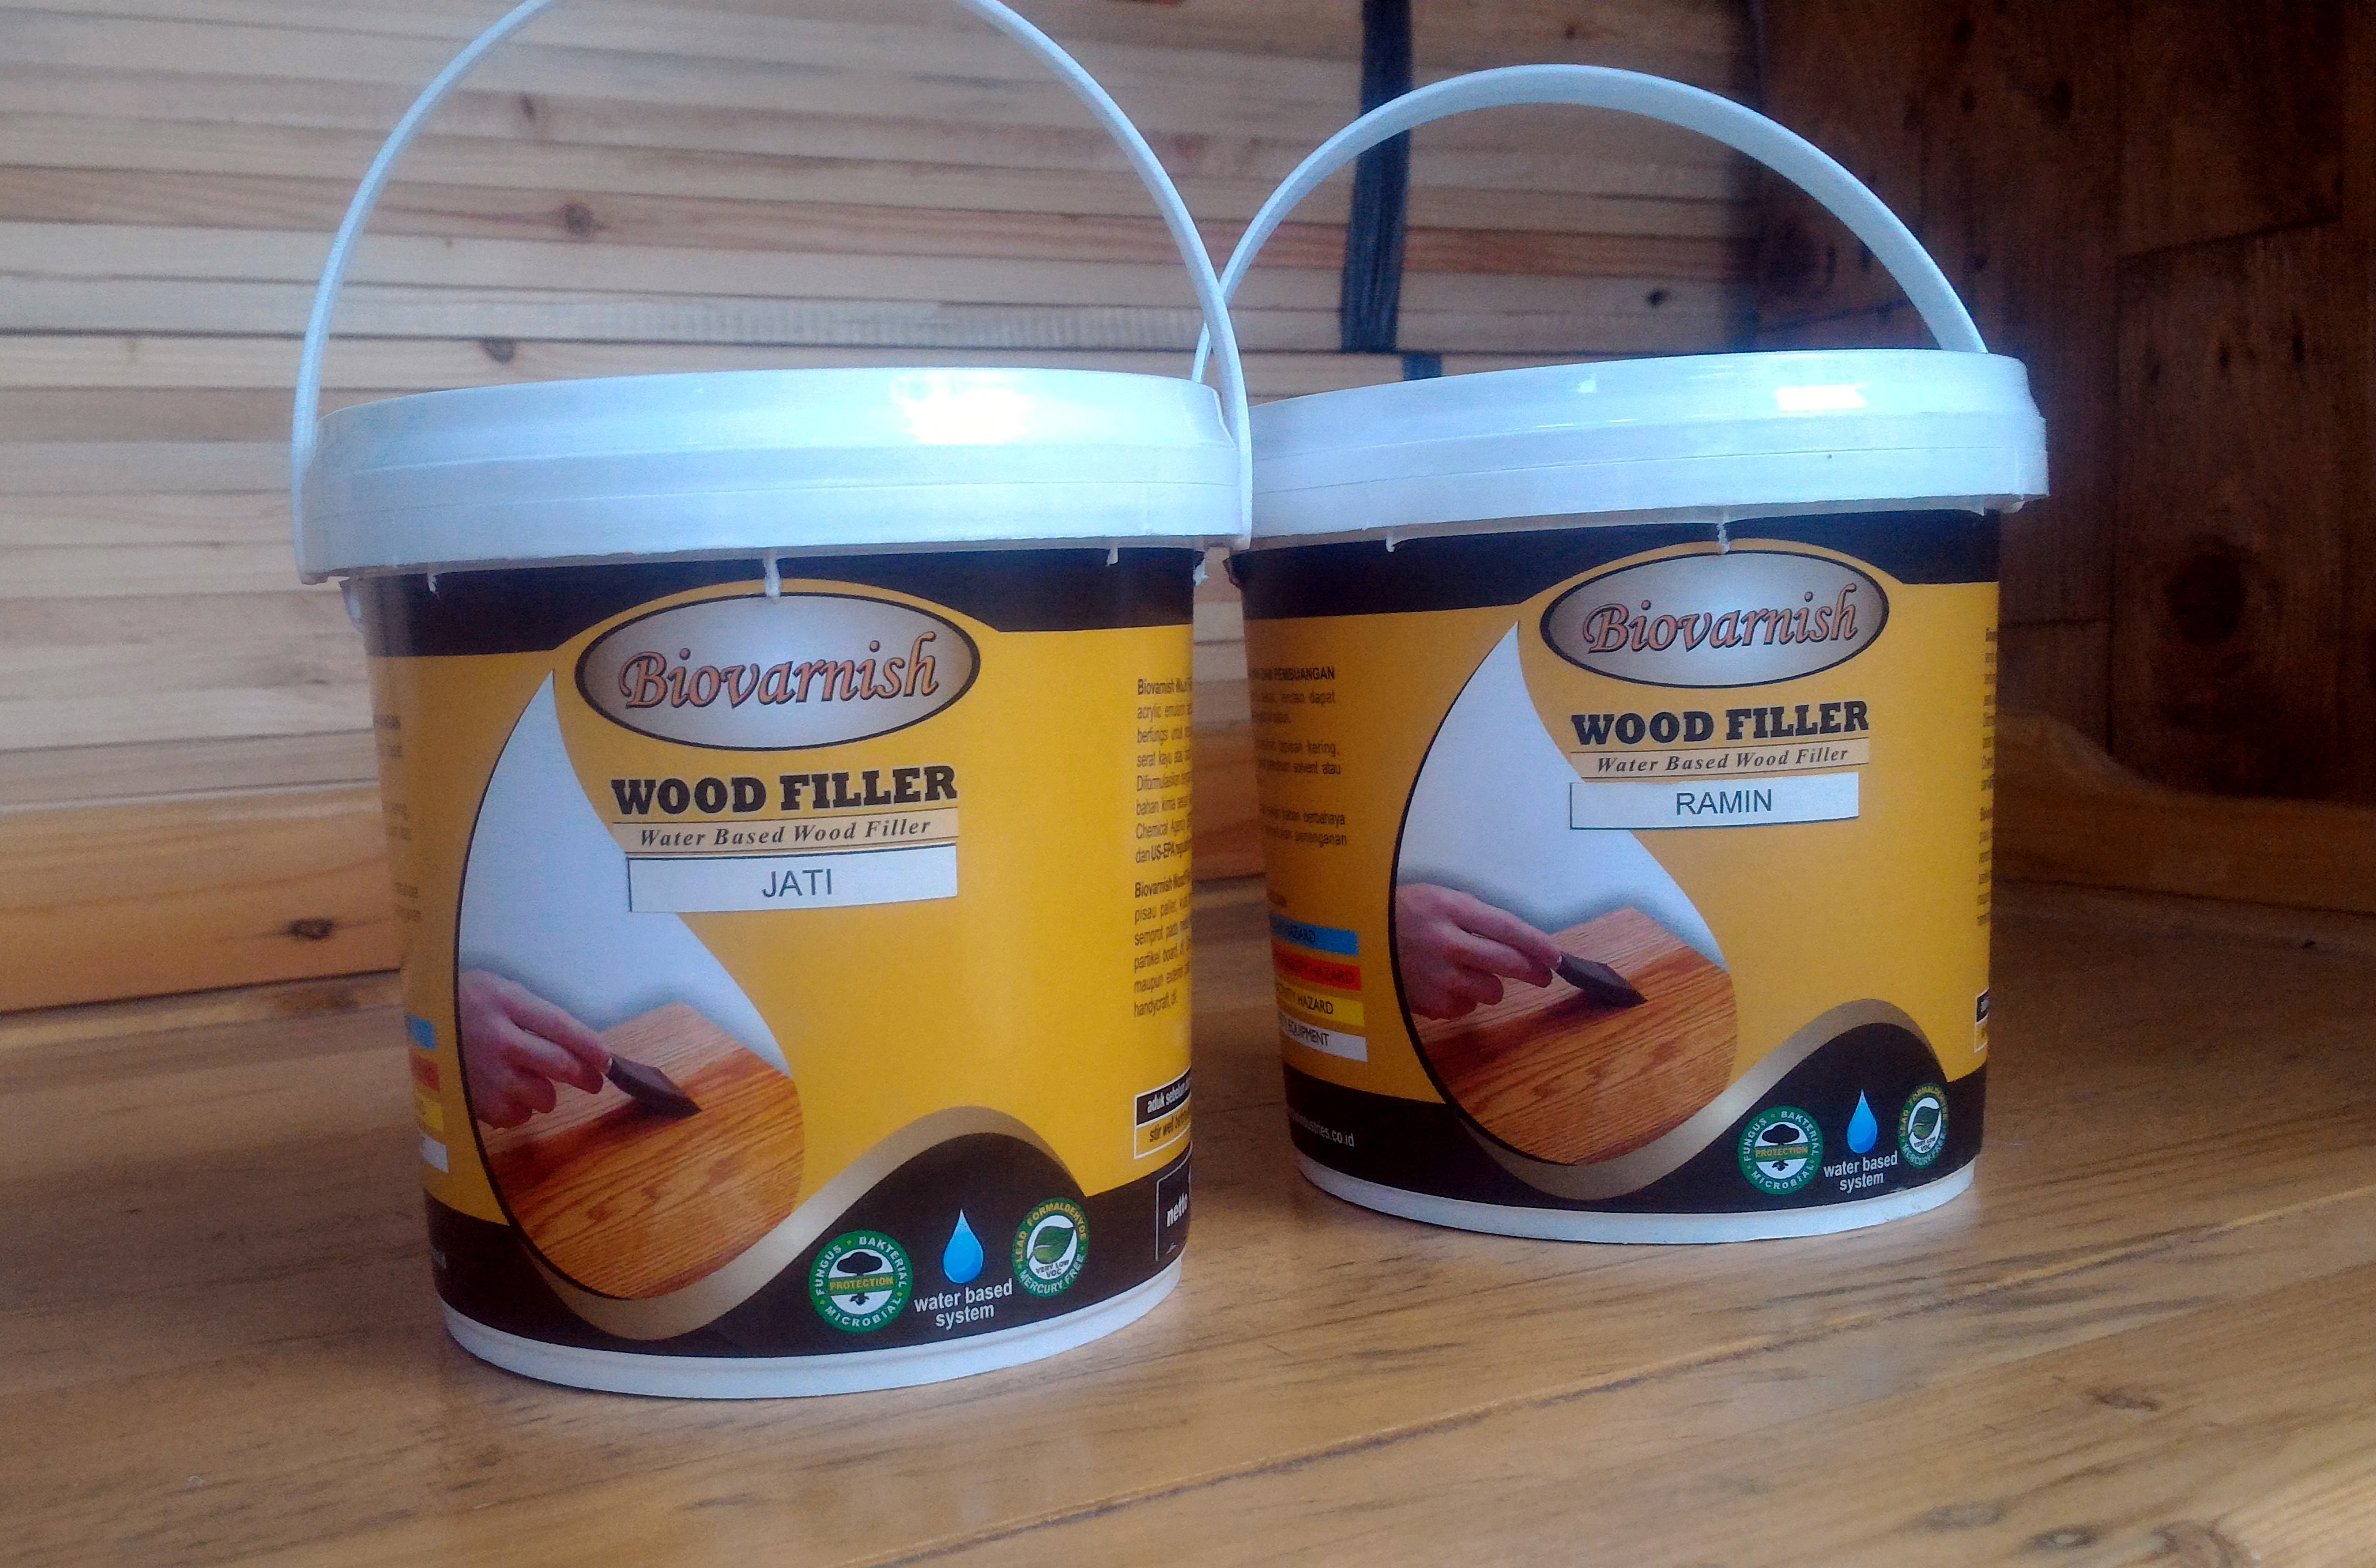 Dempul Kayu Transparan Water Based Biovarnish Wood Filler